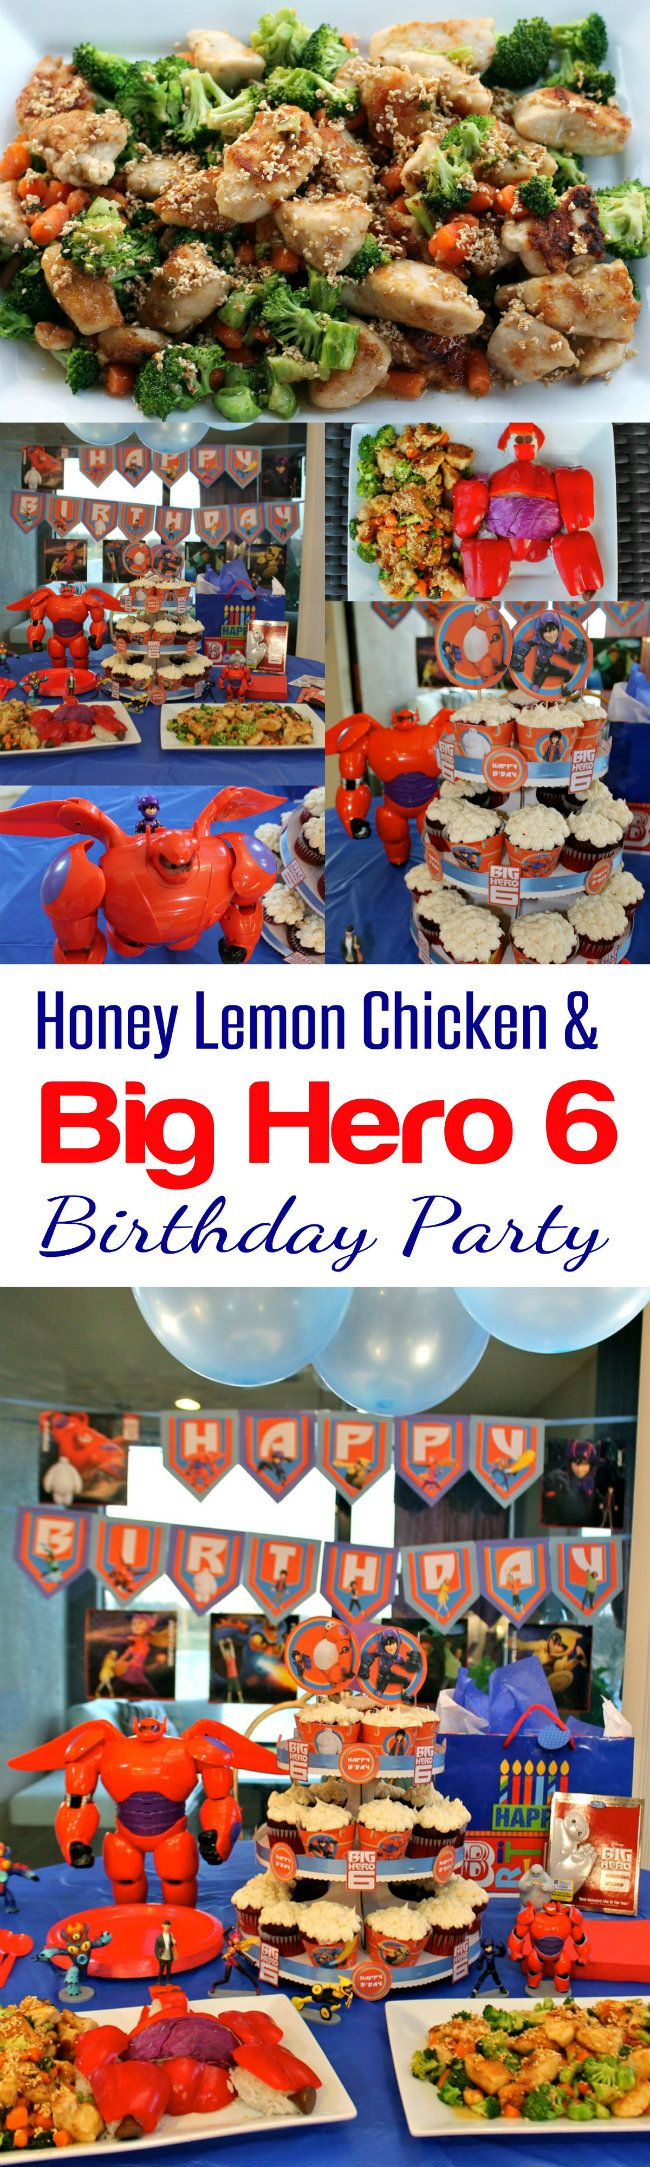 Big Hero 6 birthday party theme. Lemon chicken dinner idea with Big Hero 6.